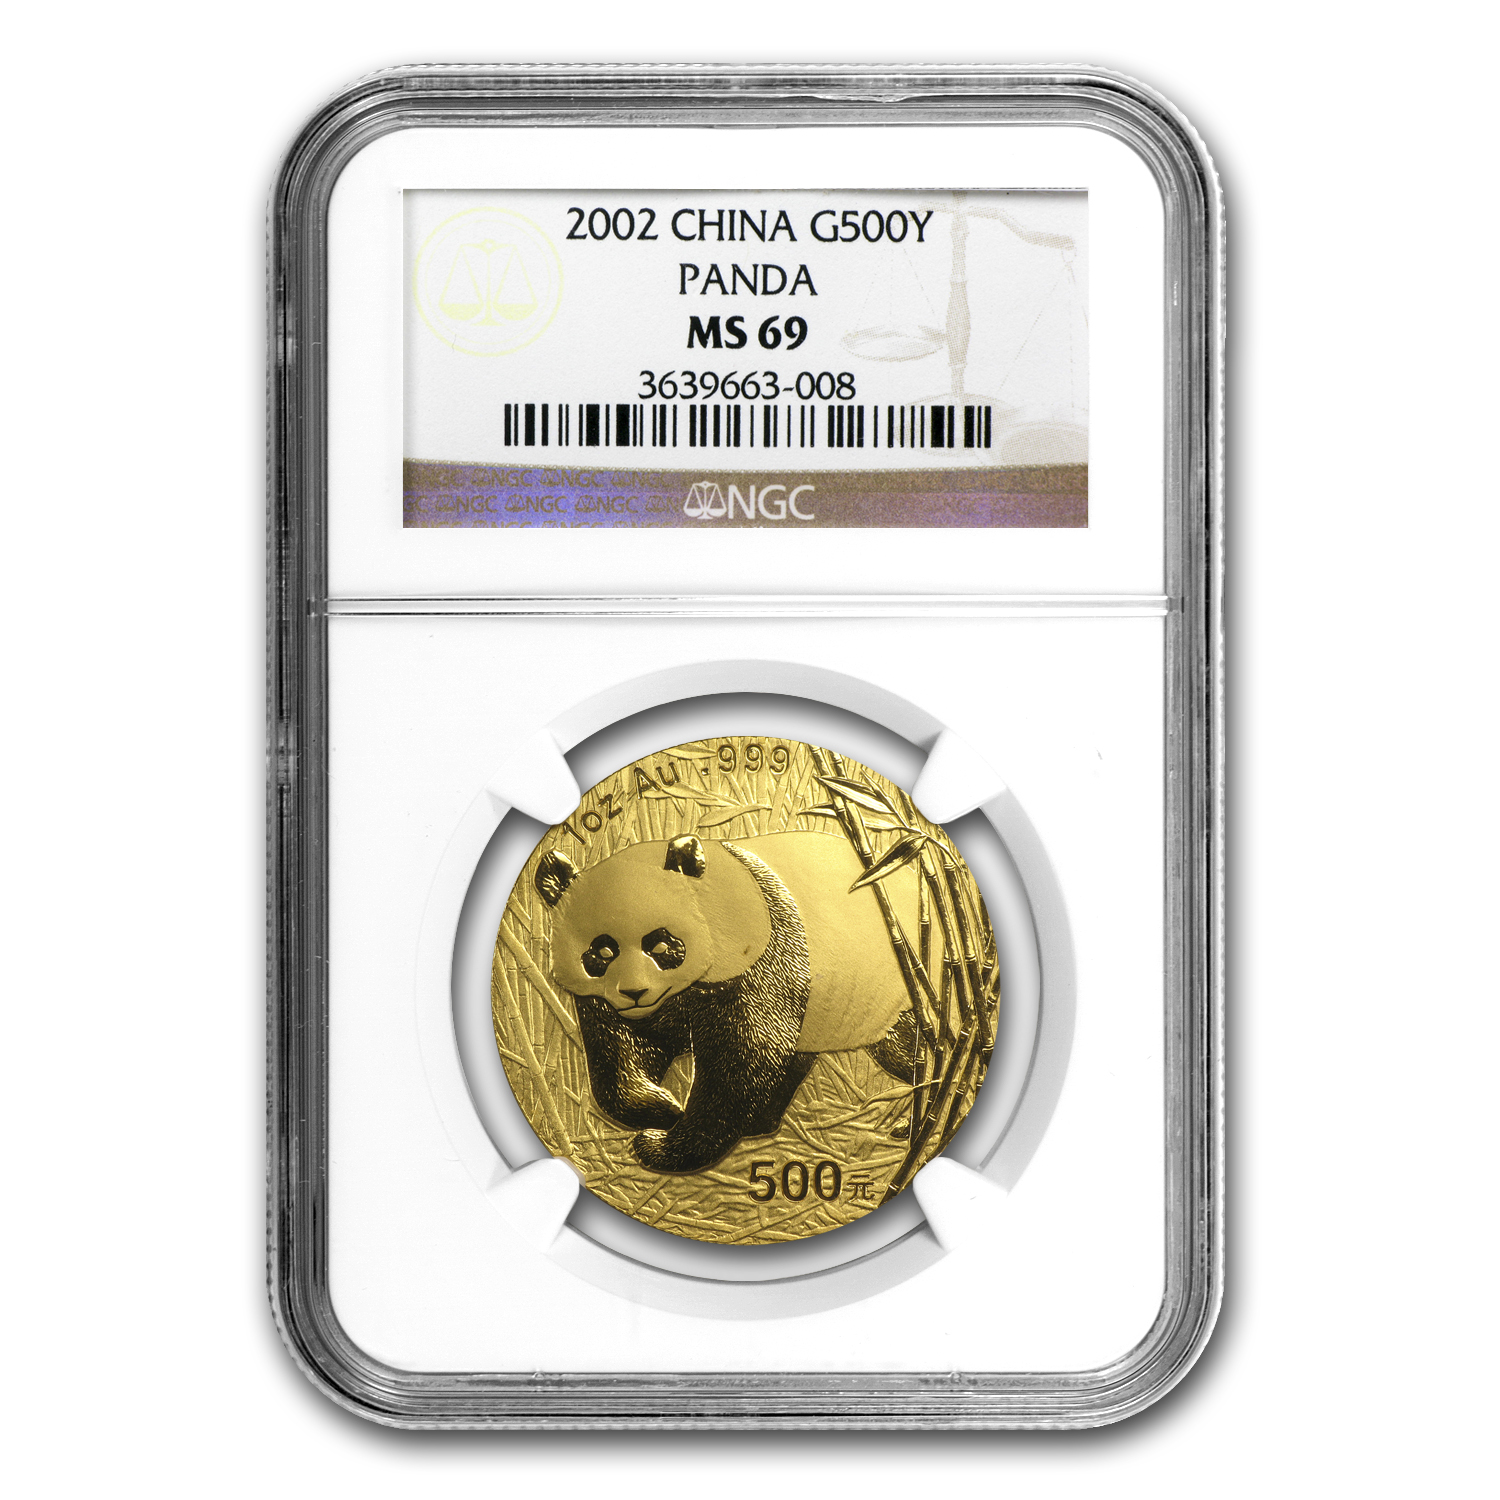 2002 China 1 oz Gold Panda MS-69 NGC